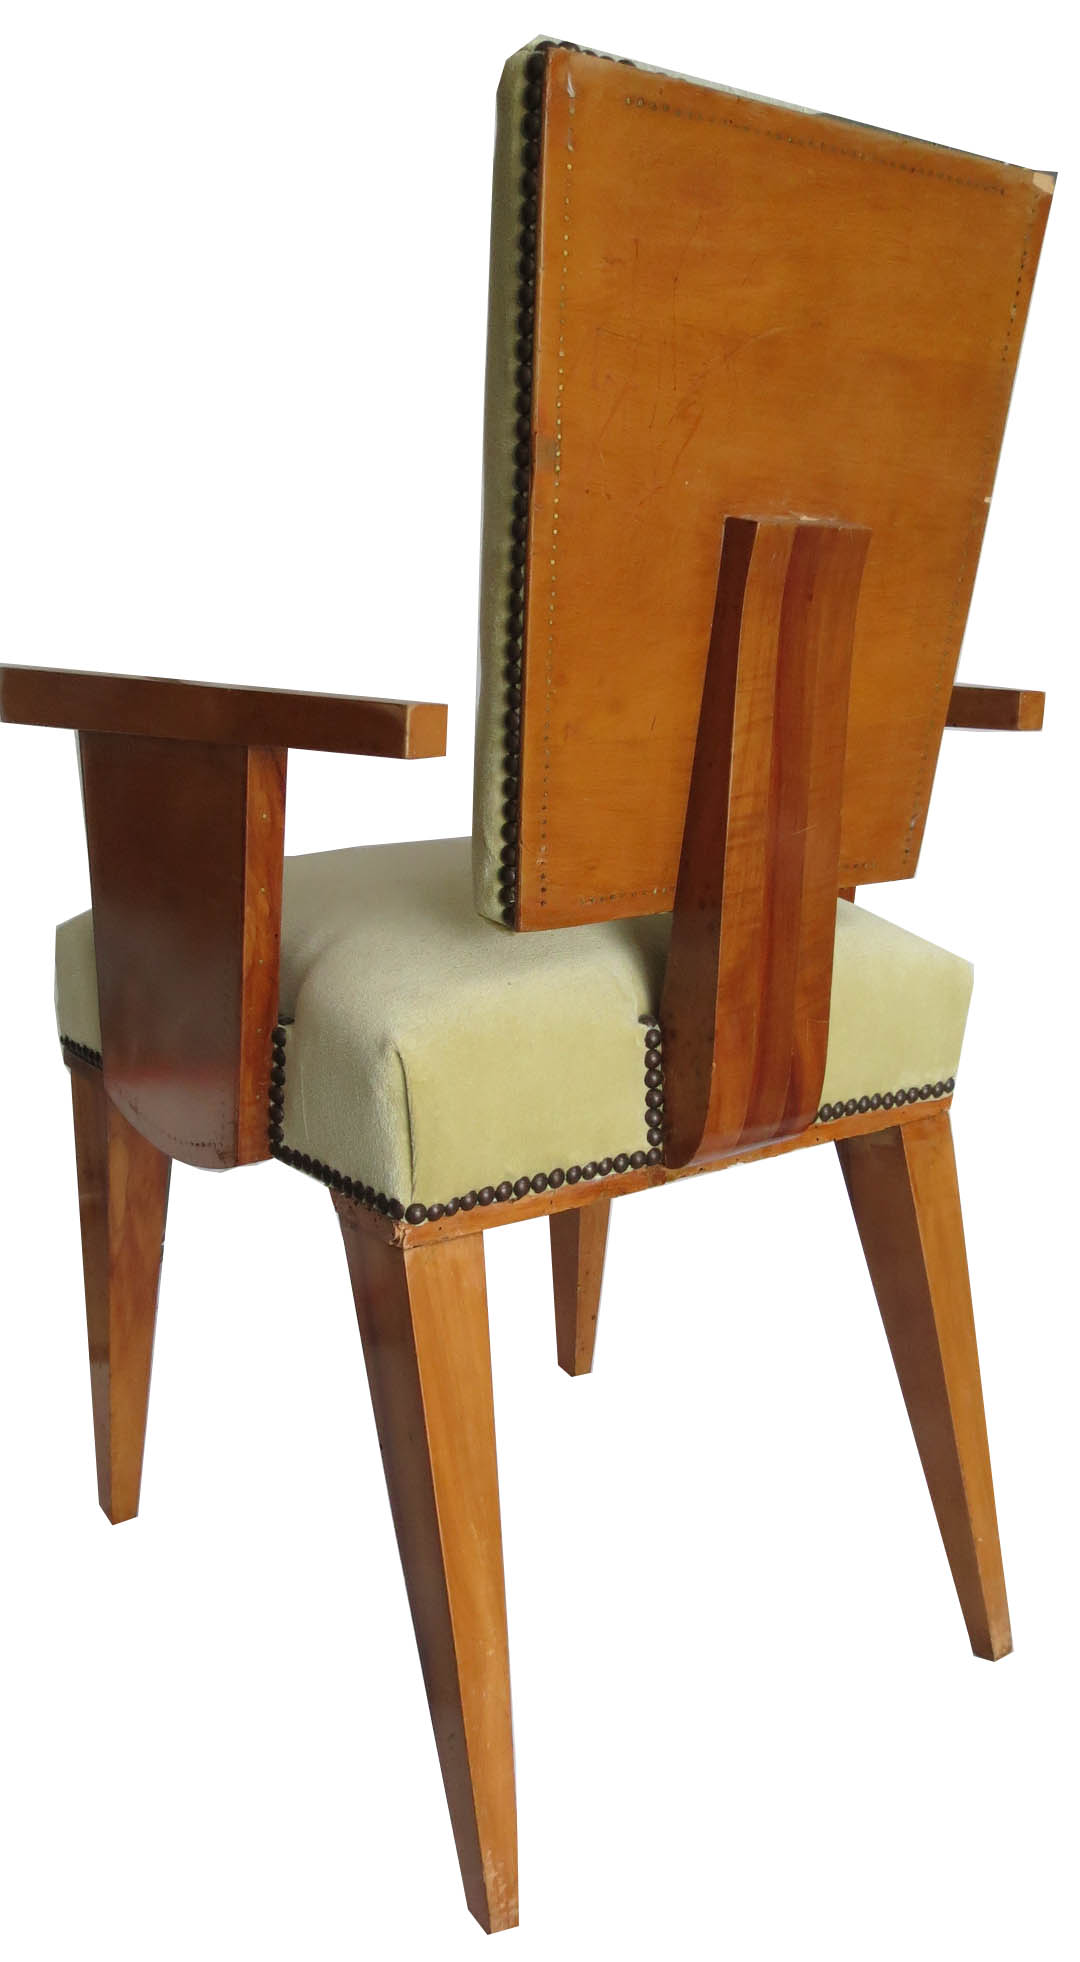 Artistic Chairs Pair Of French Art Deco Arm Chairs By Andre Sornay Modernism